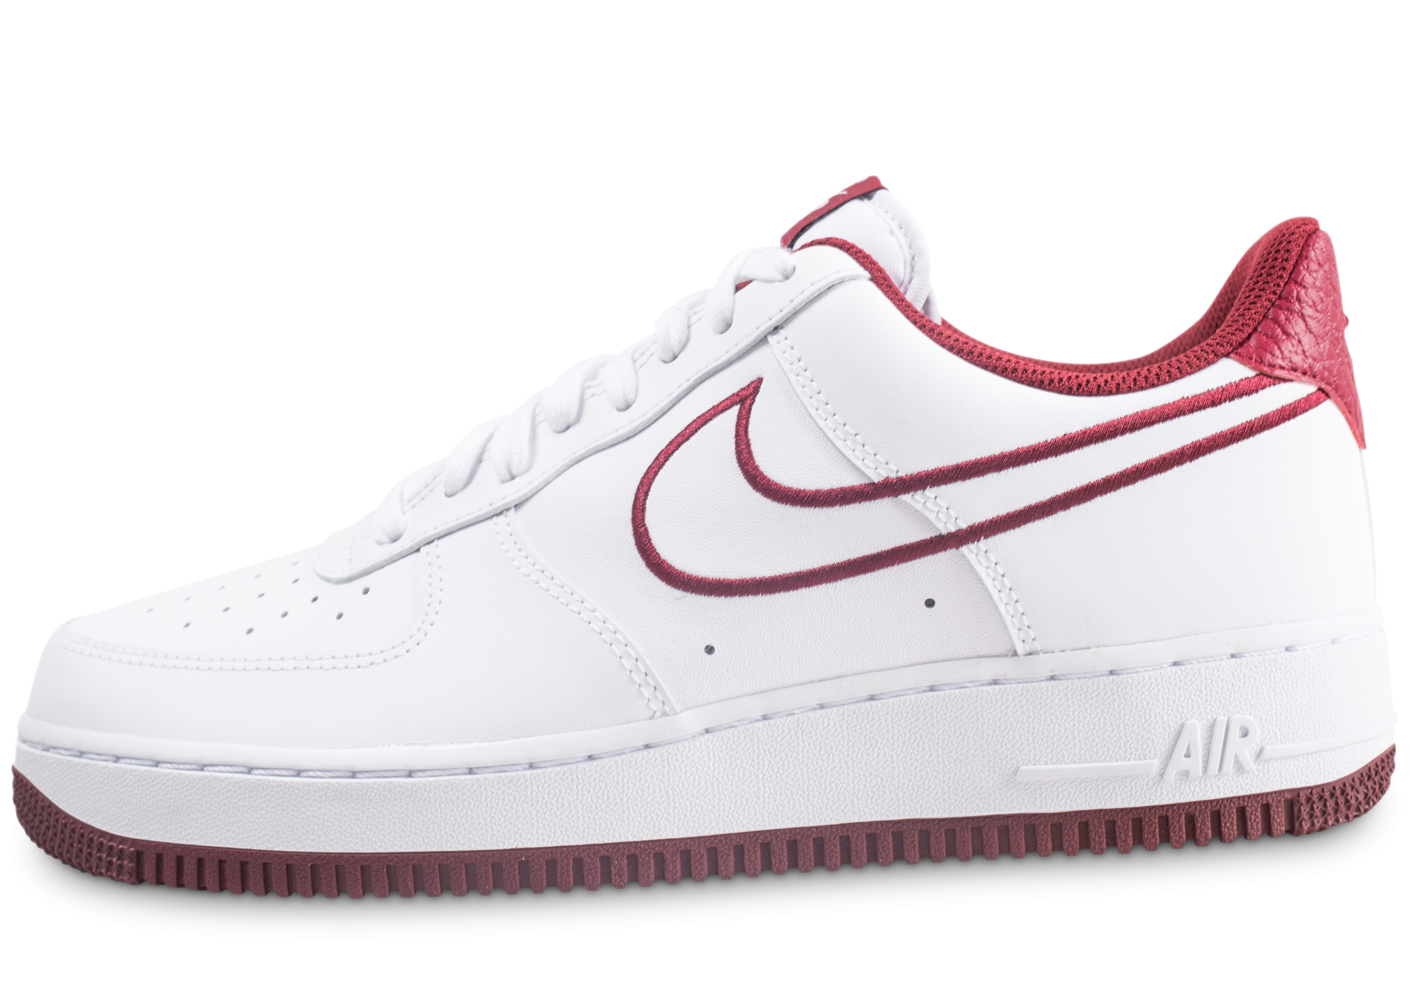 Nike Nike Air Force 1 '07 Leather blanc et rouge